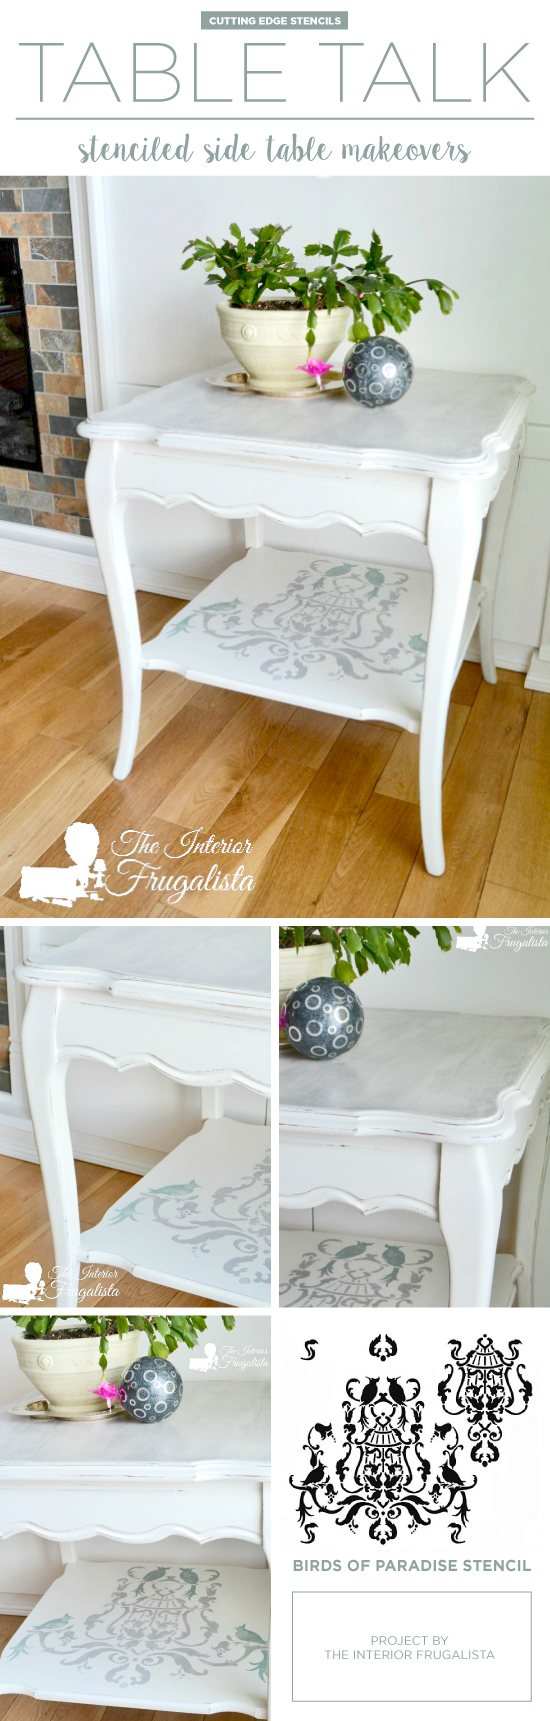 A DIY painted and stenciled side table makeover using the Birds of Paradise Stencil. http://www.cuttingedgestencils.com/birds-pattern-stencil.html